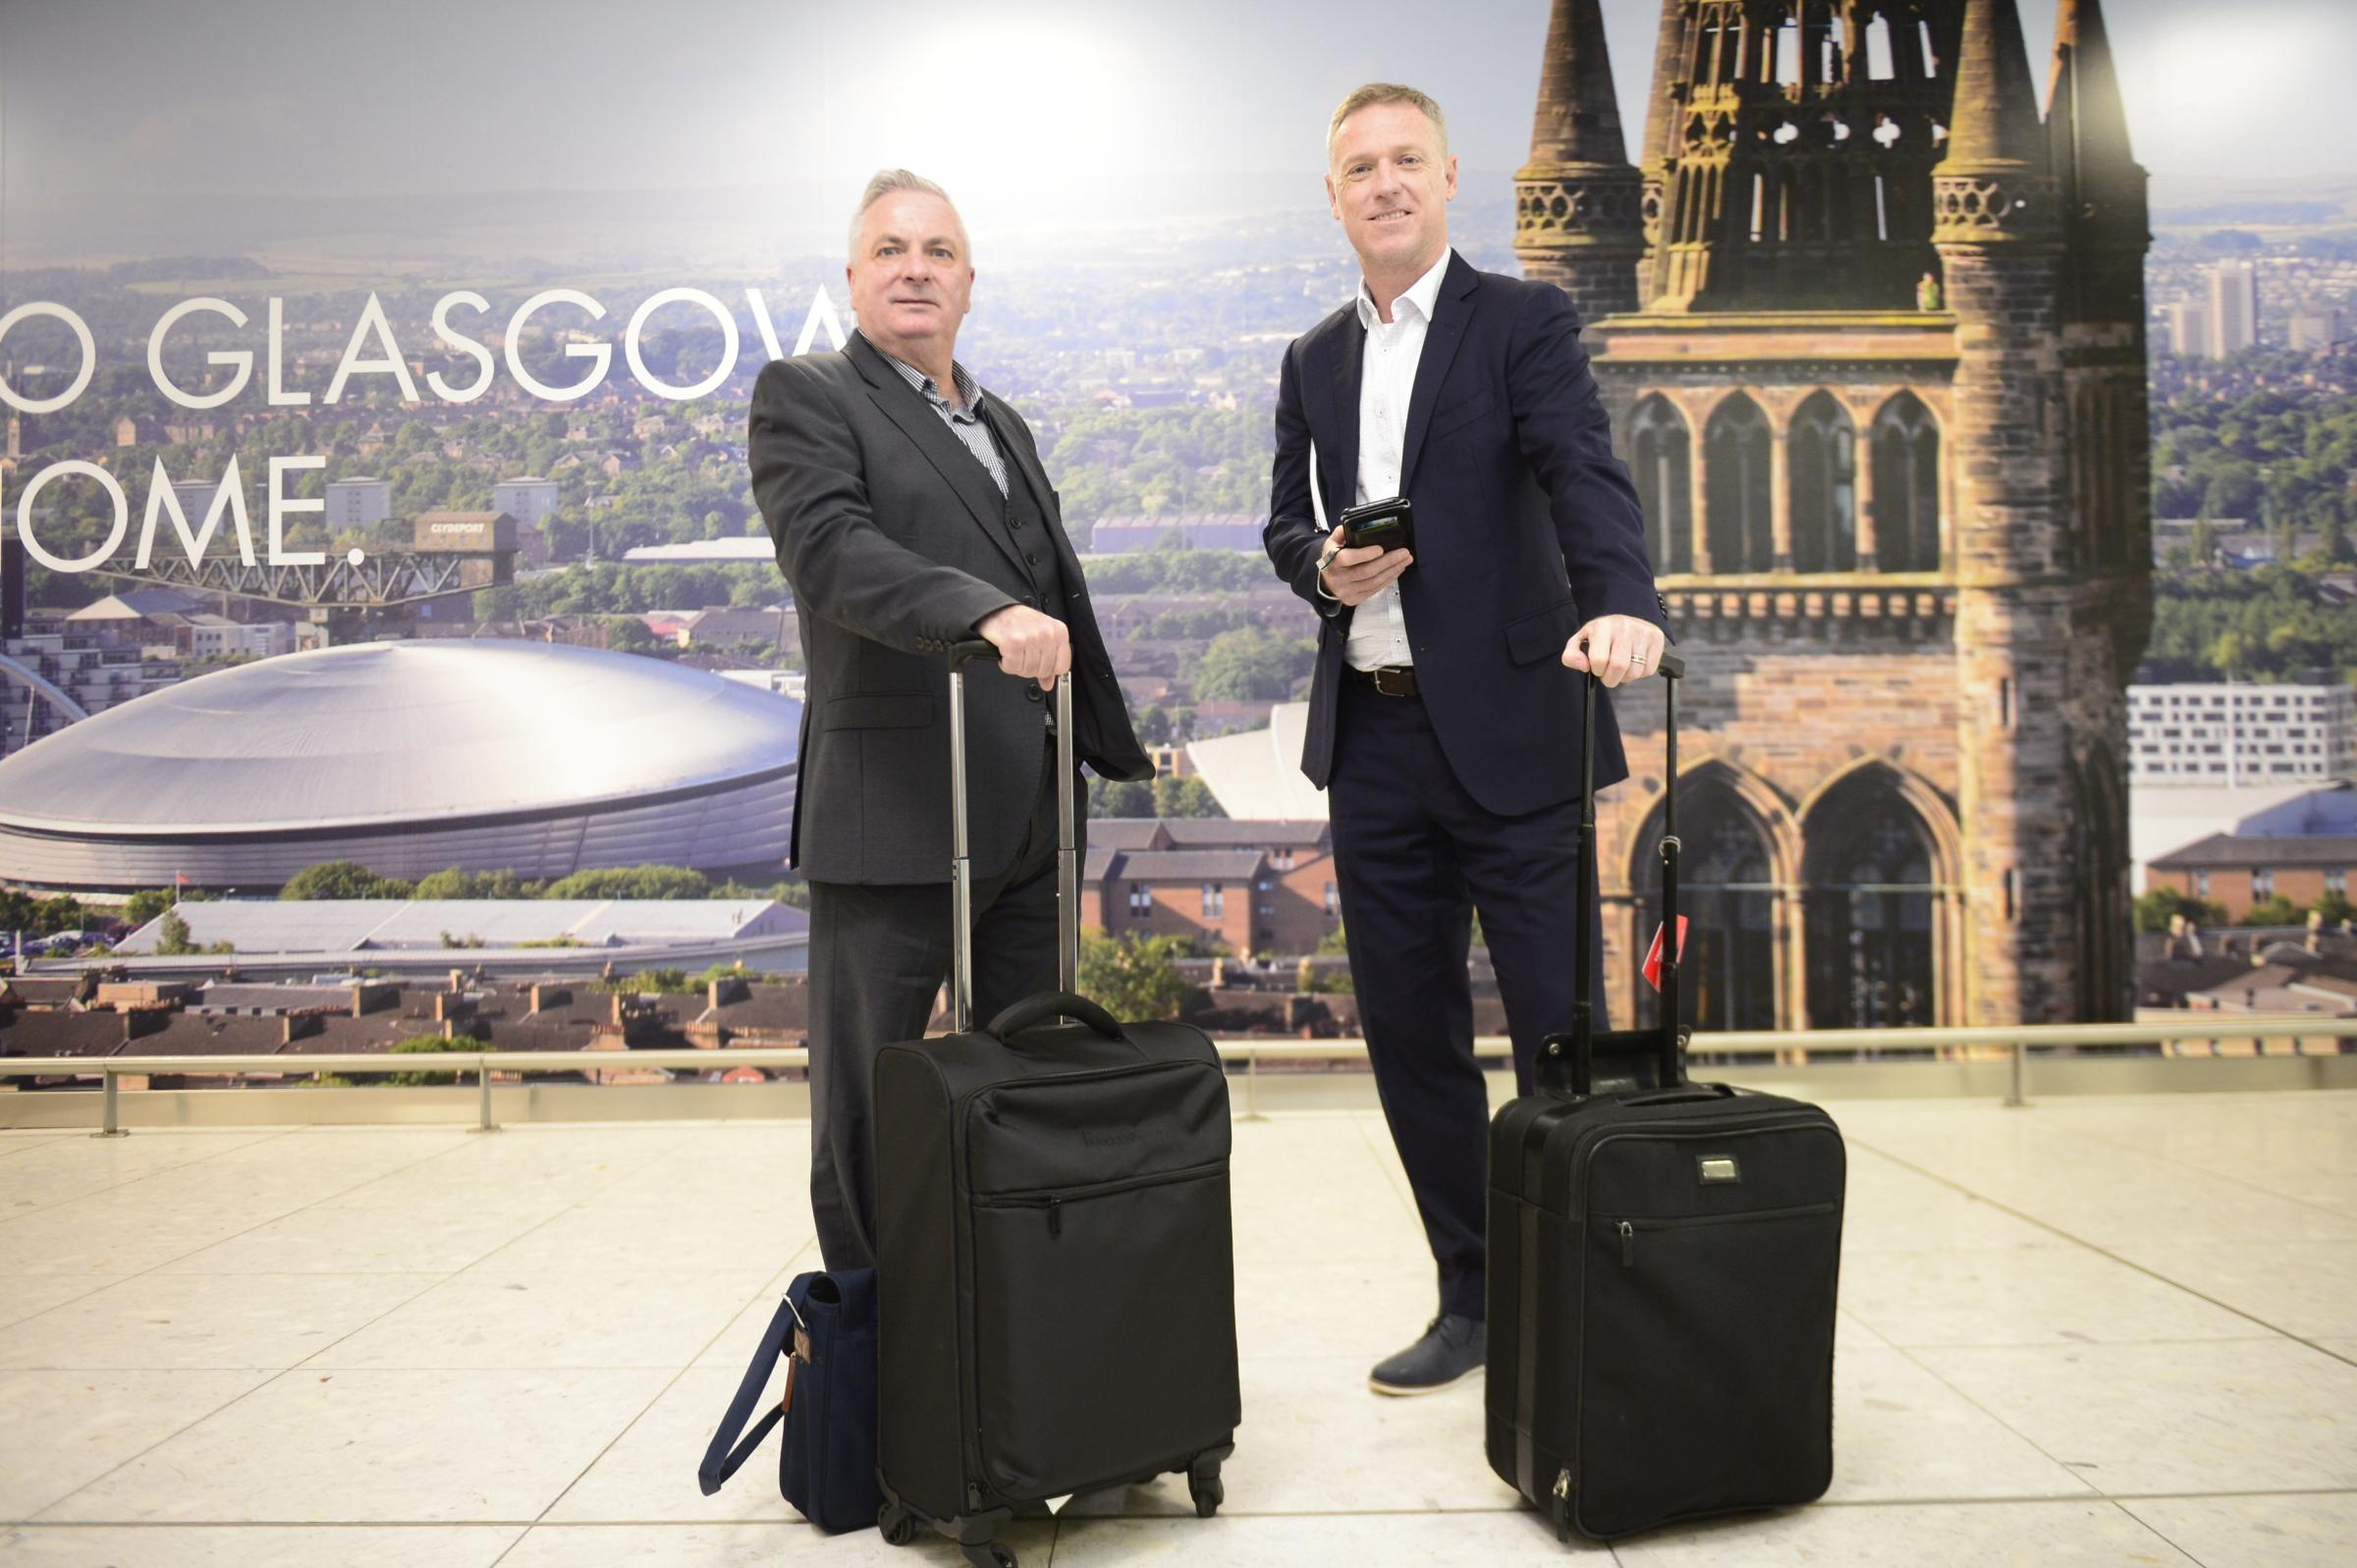 Football agents John Viola (left) and Craig Moore (right) at Glasgow Airport